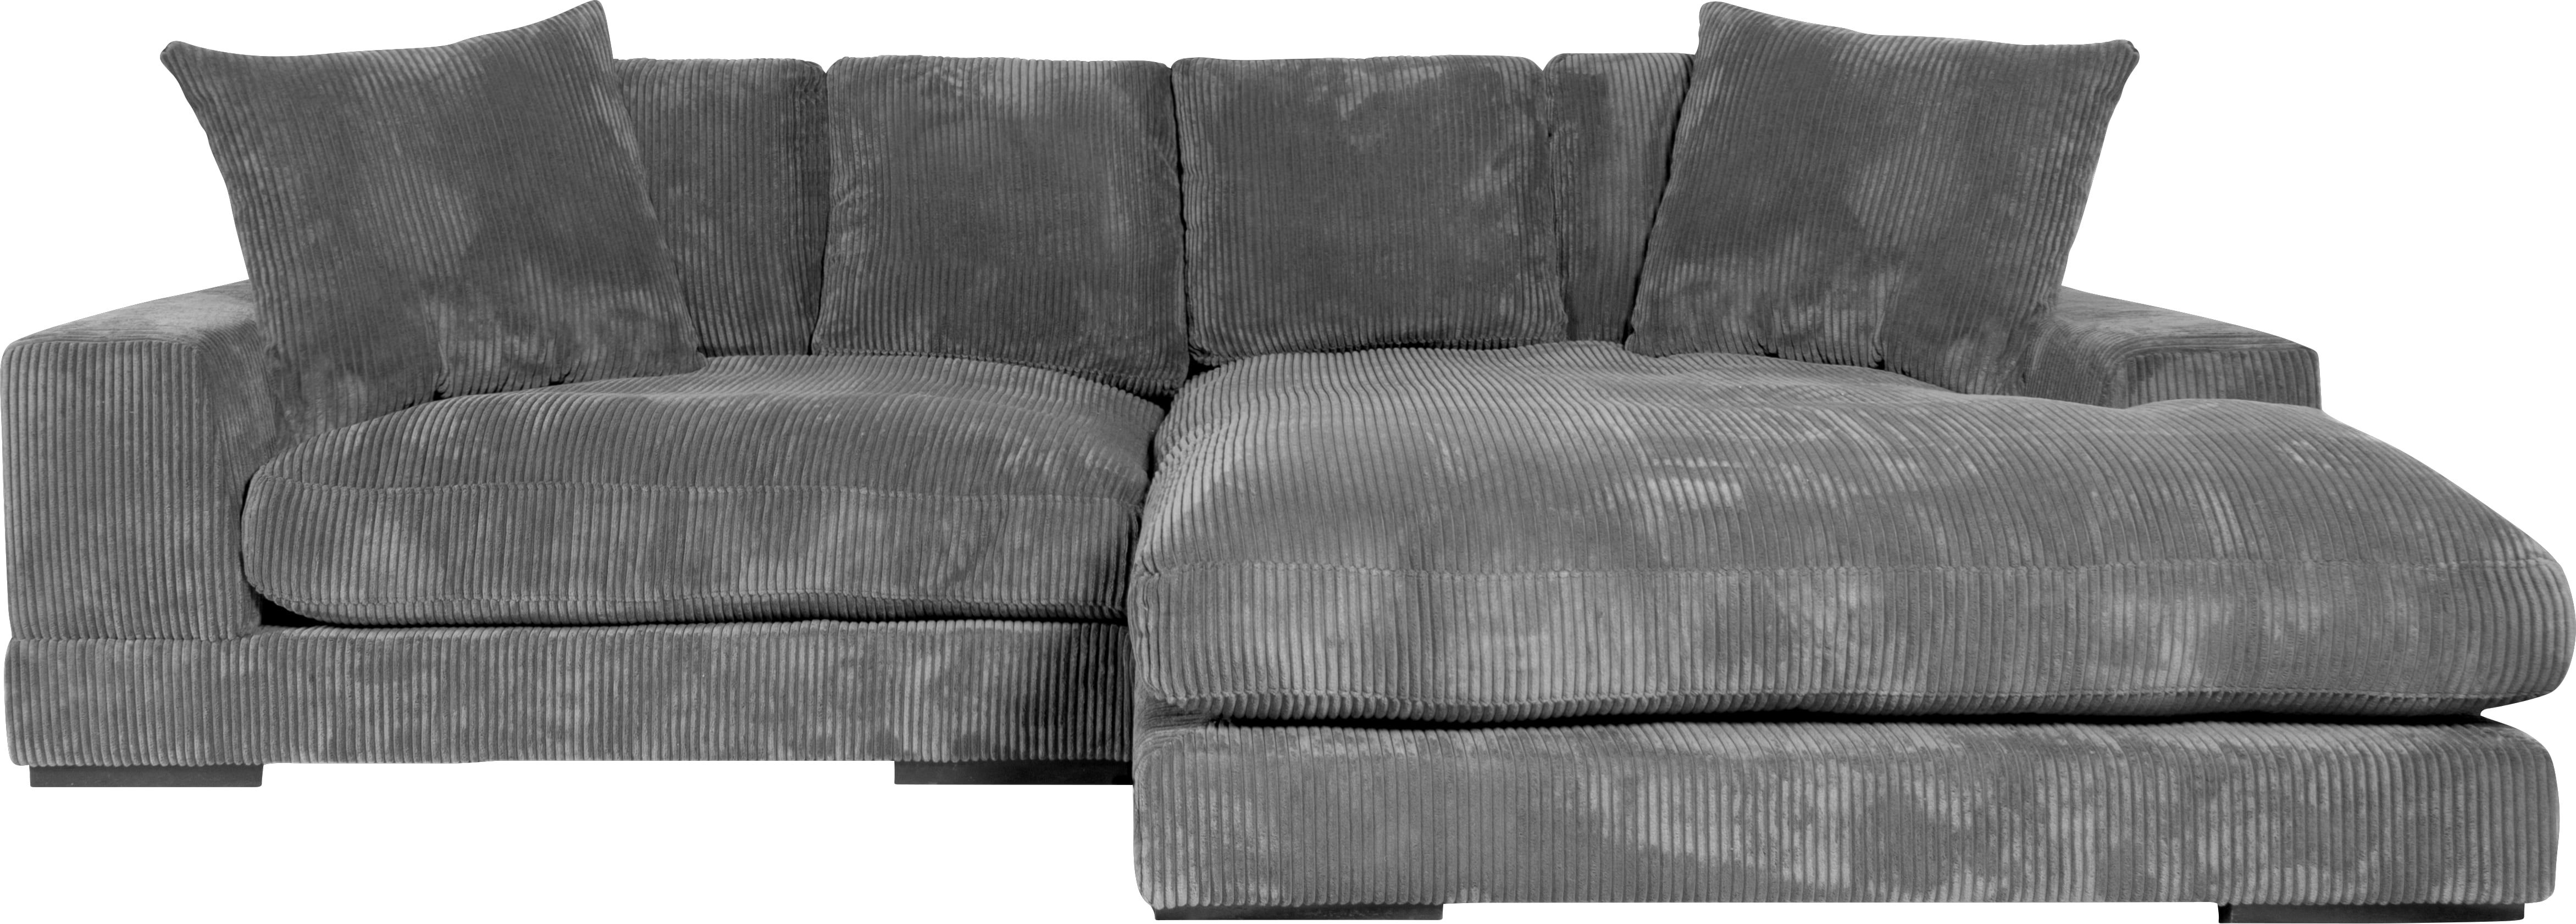 Plunge Lake Dark Gray 2 Pc Sectional Sectional Sofa Slipcovers Deep Sectional Sofa Sectional Sofa With Chaise